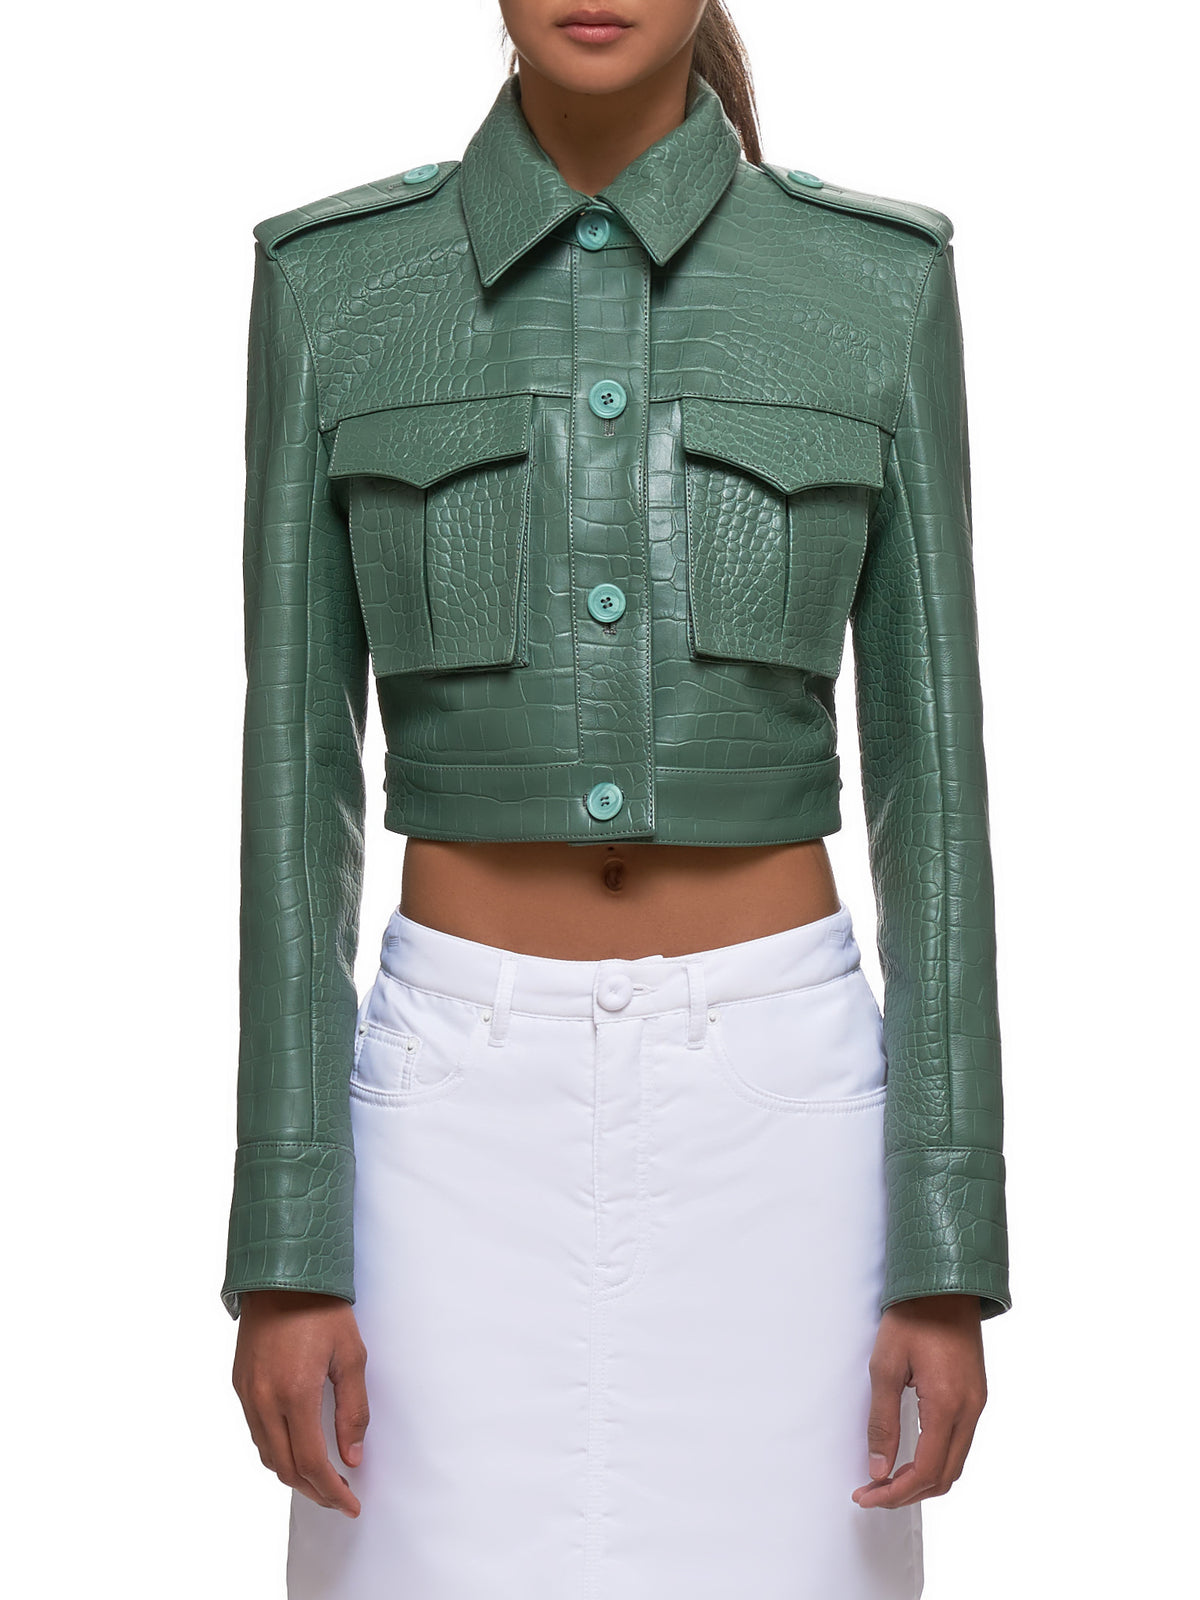 Maya Embossed Croc Leather Jacket (15LO4031-GREEN)